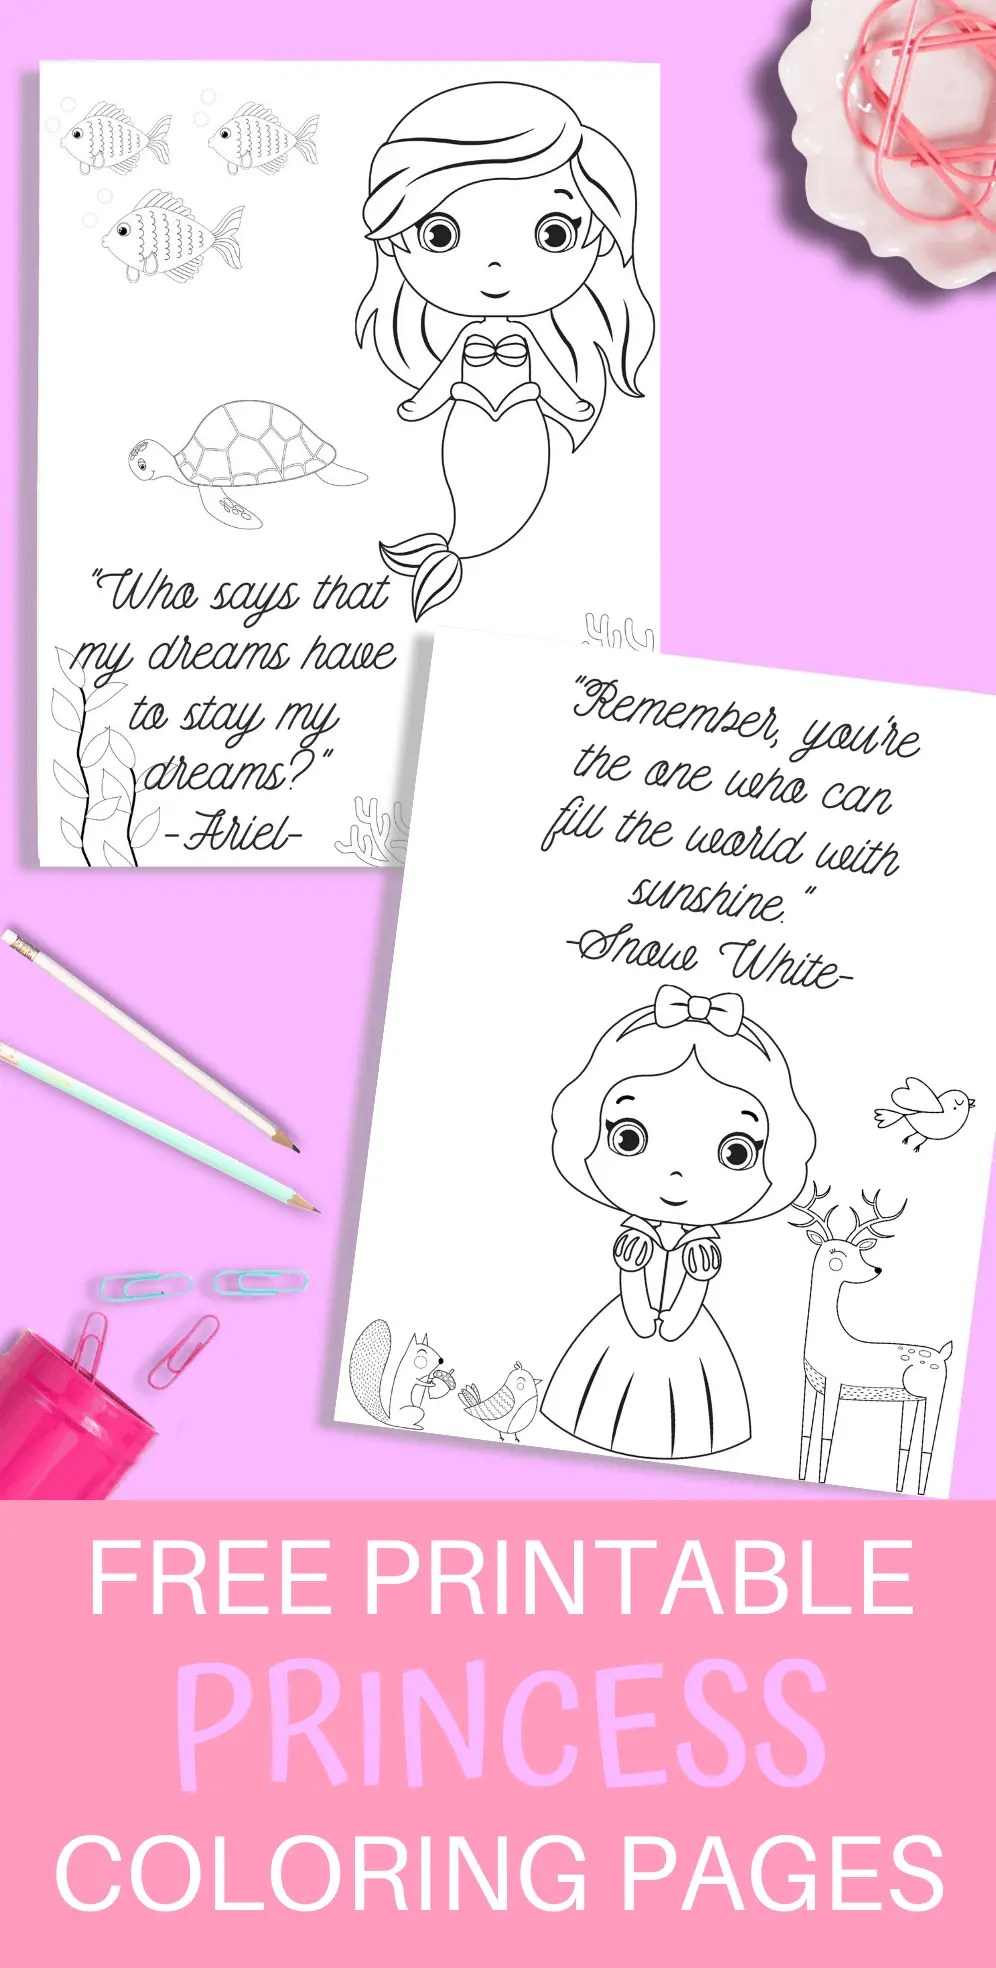 Princess Printable Coloring Pages Just What We Eat